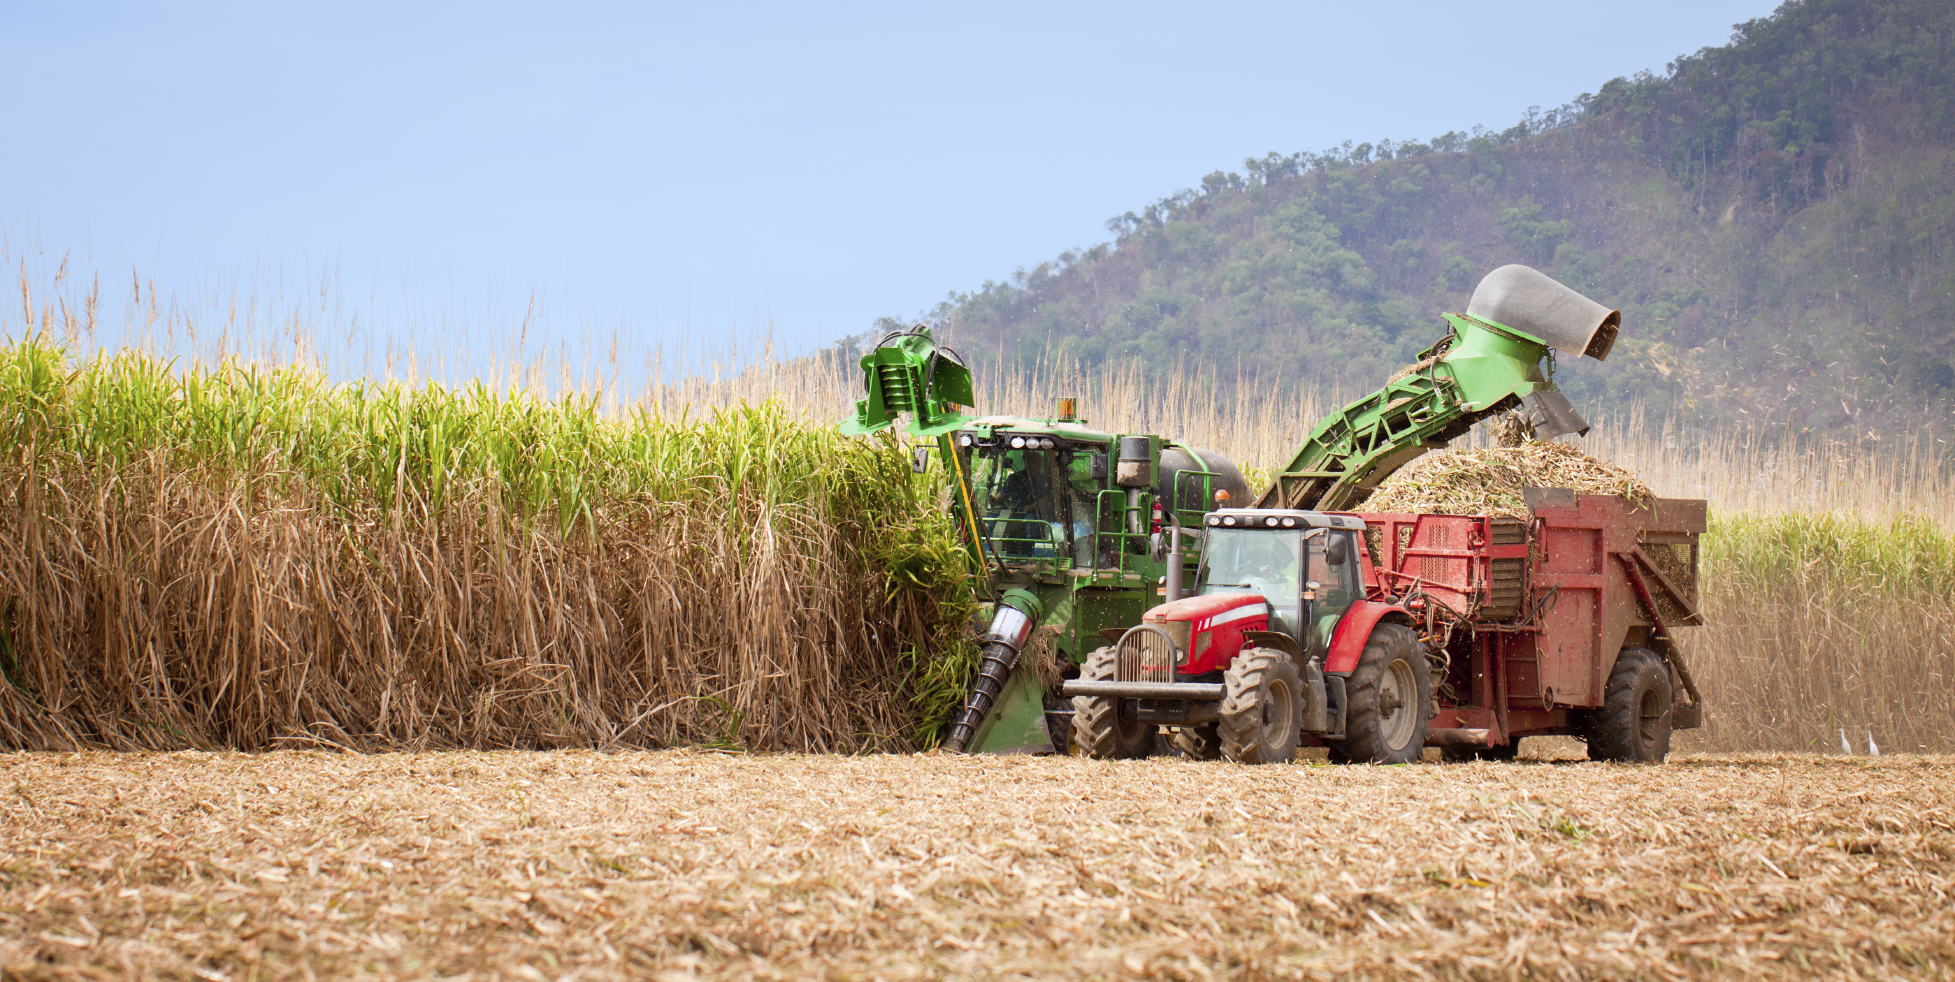 Monoculture farming driven by the use of fossil fuels